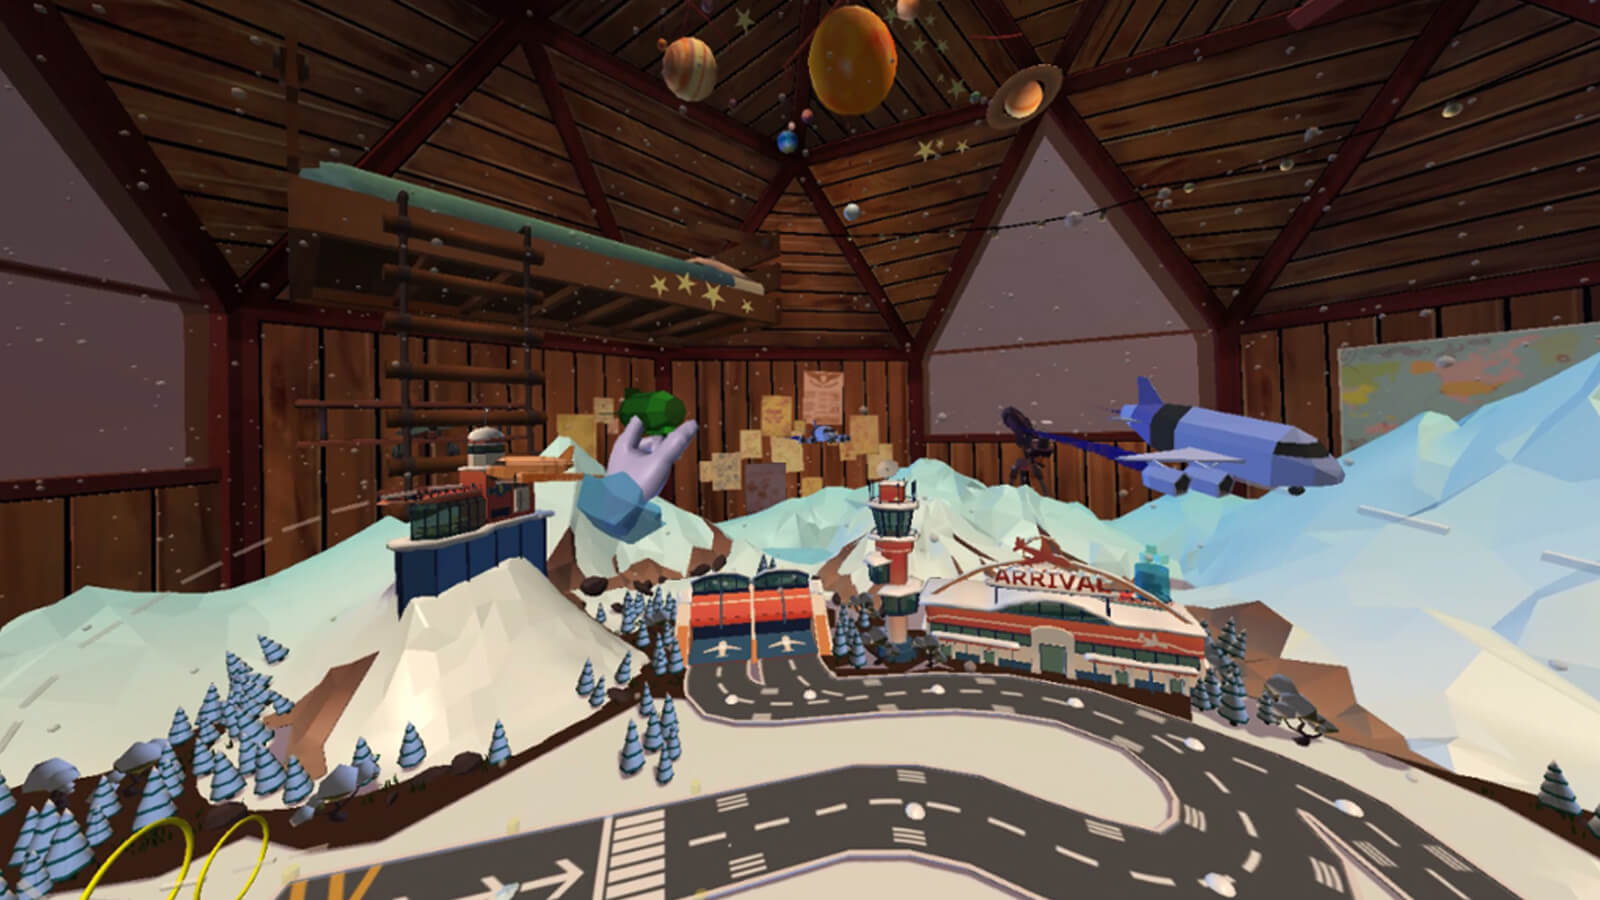 A snowy 3D modeled airport sit inside a wood-paneled room. The player's disembodied hand can be seen manipulating aircraft.